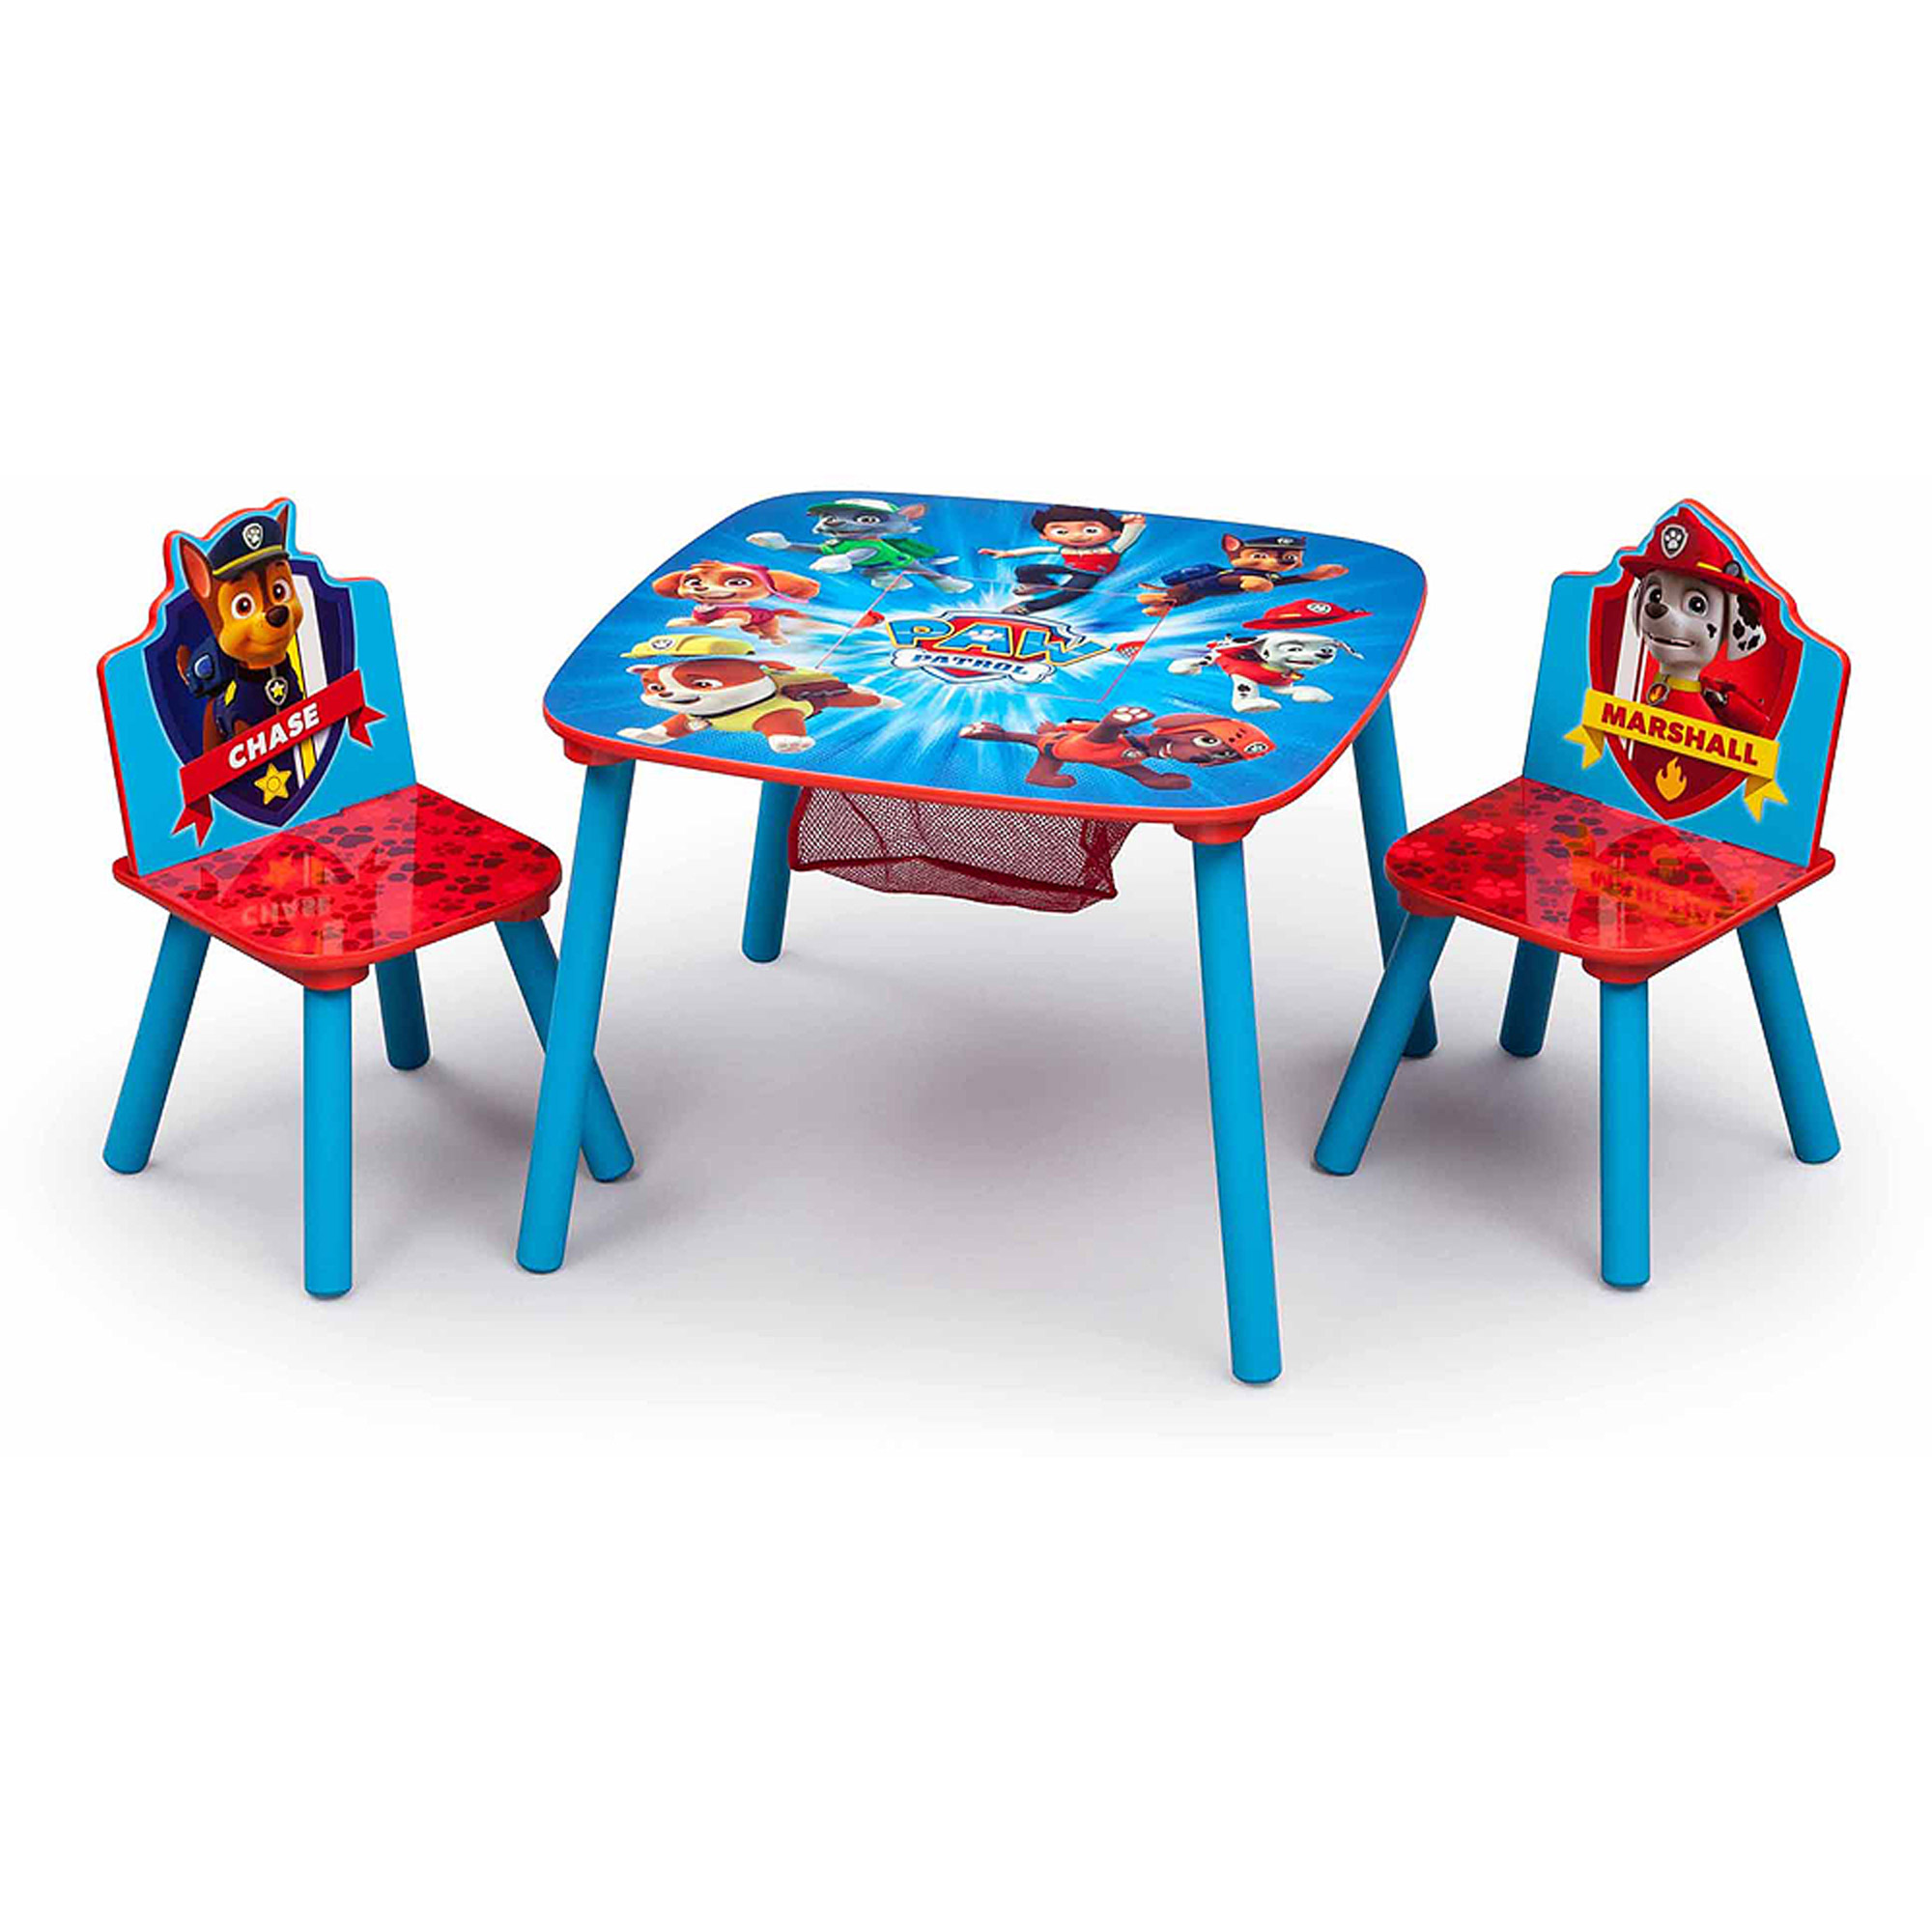 Table With Chairs Nick Jr Dora The Explorer Wood Kids Storage Table And Chairs Set By Delta Children